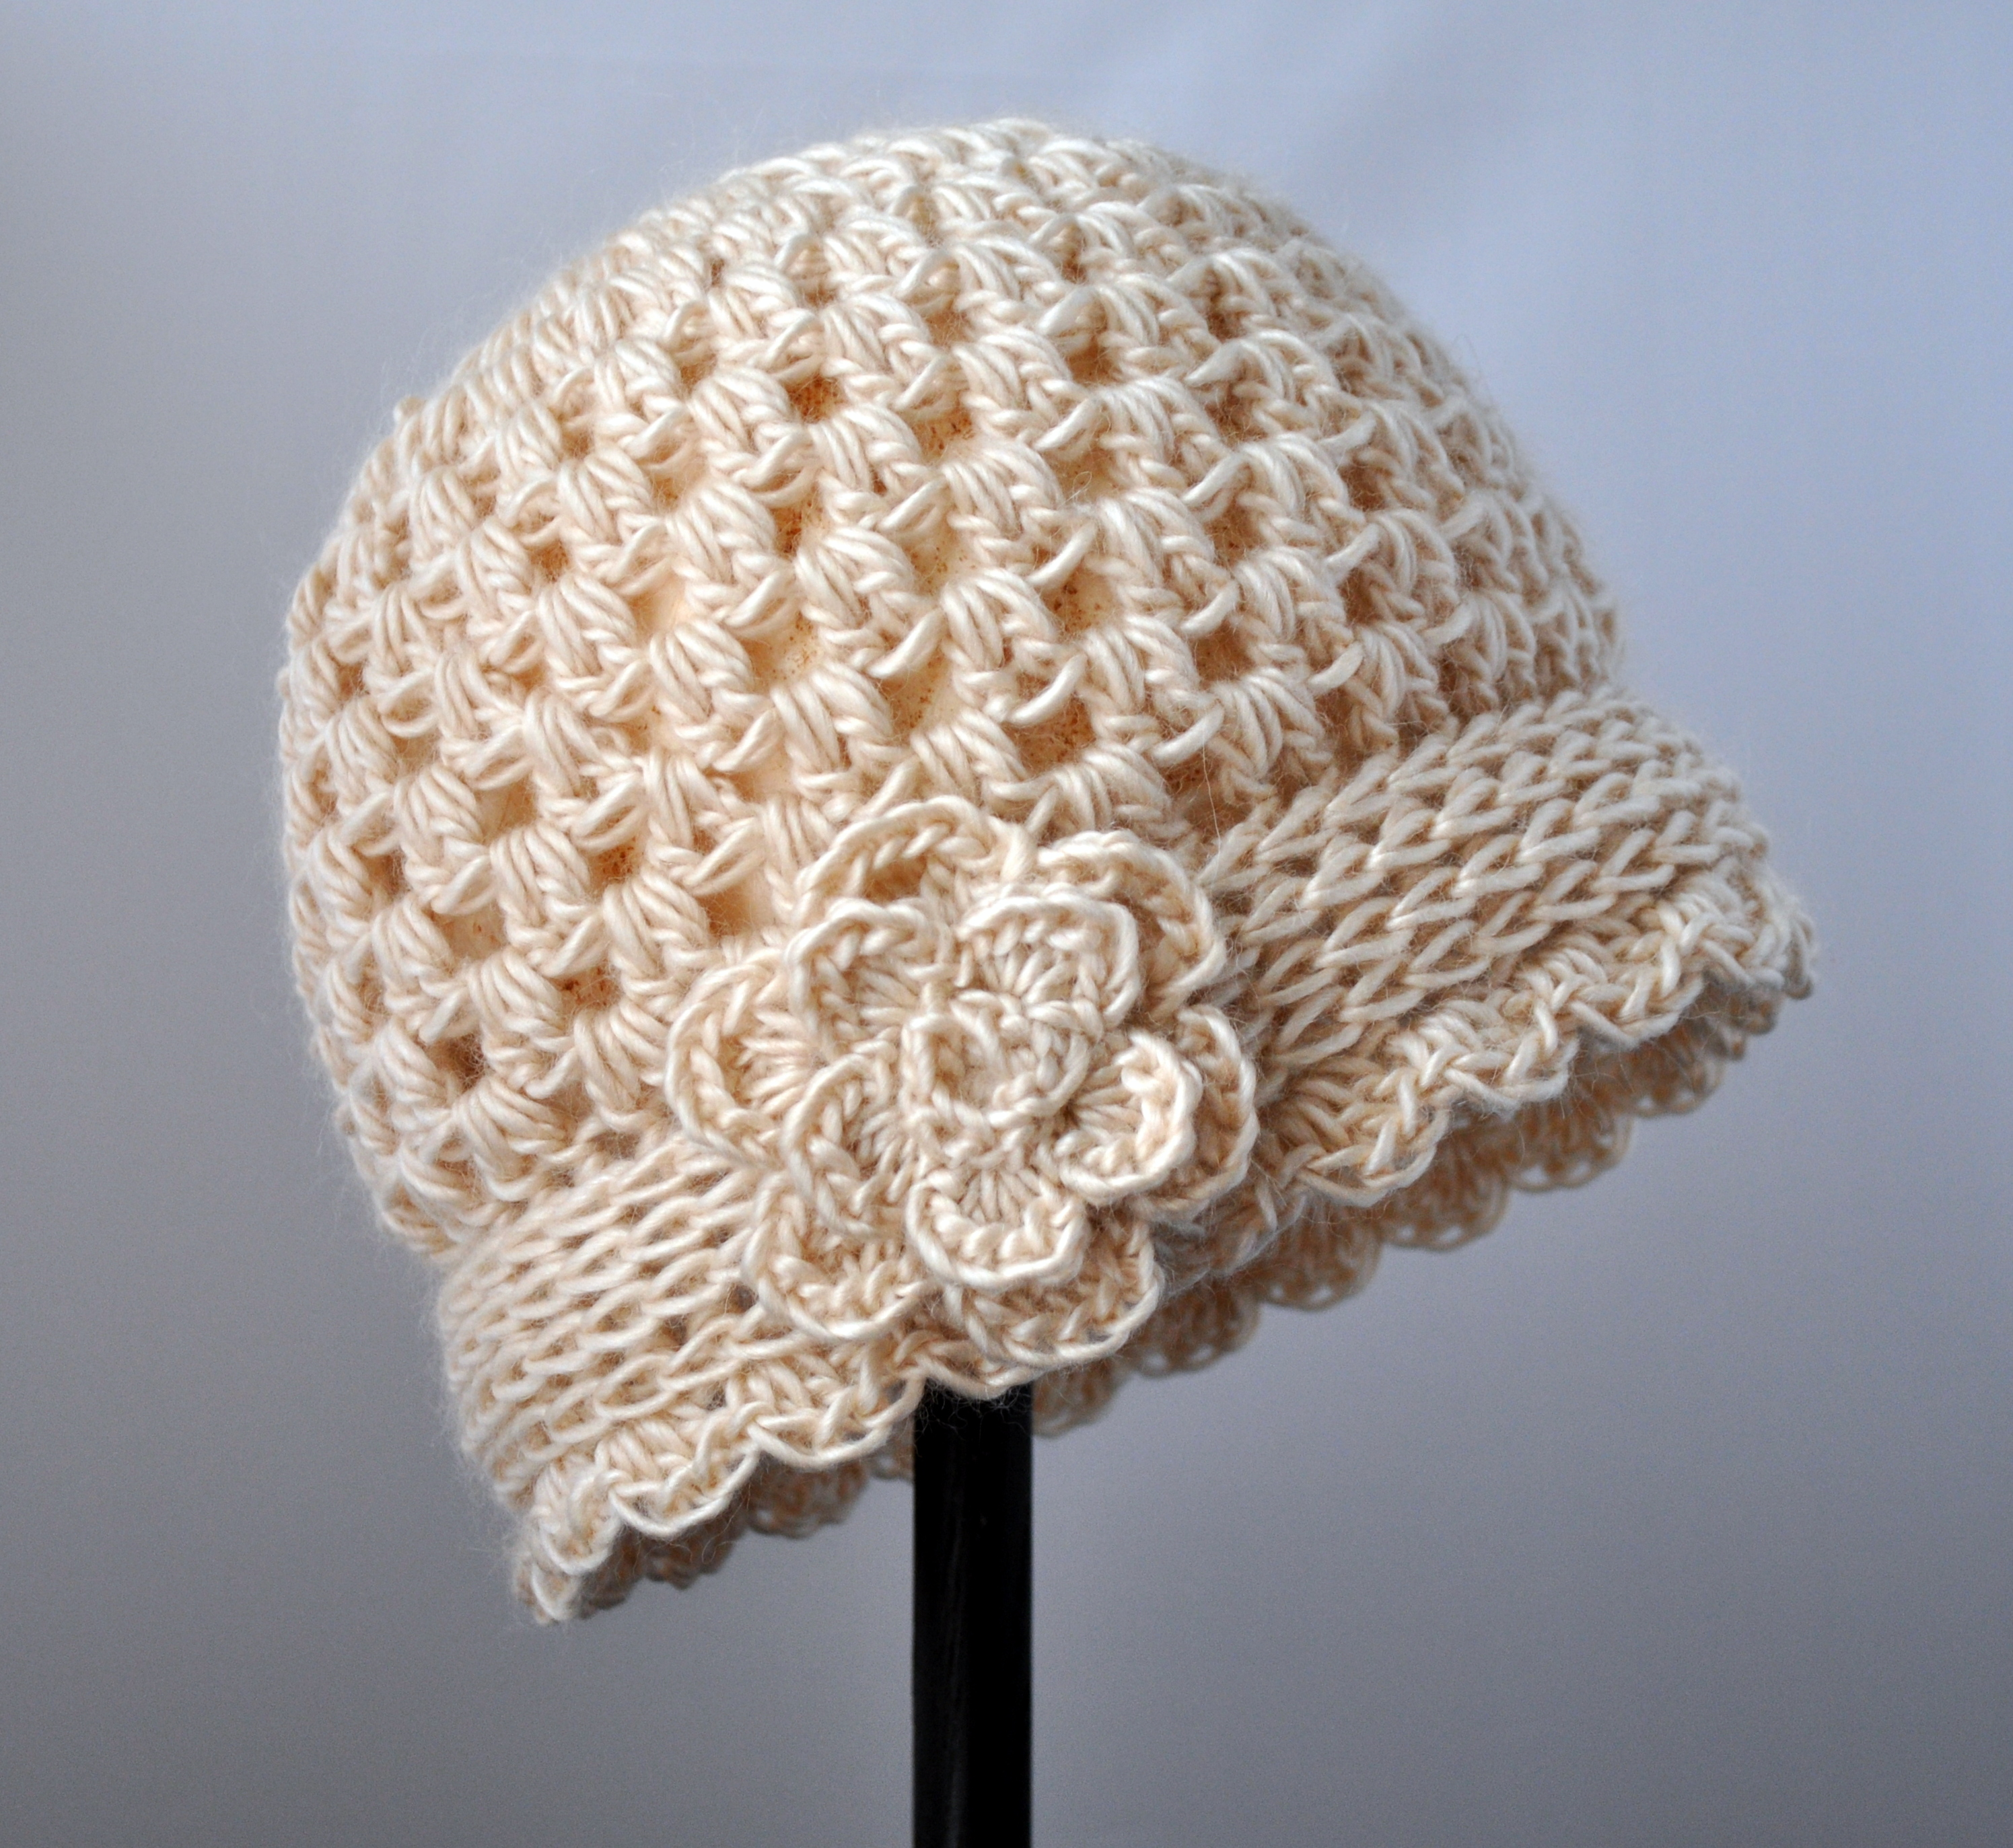 Crocheting Hats Patterns : Crochet Vintage Flowered Cloche Pattern Classy Crochet